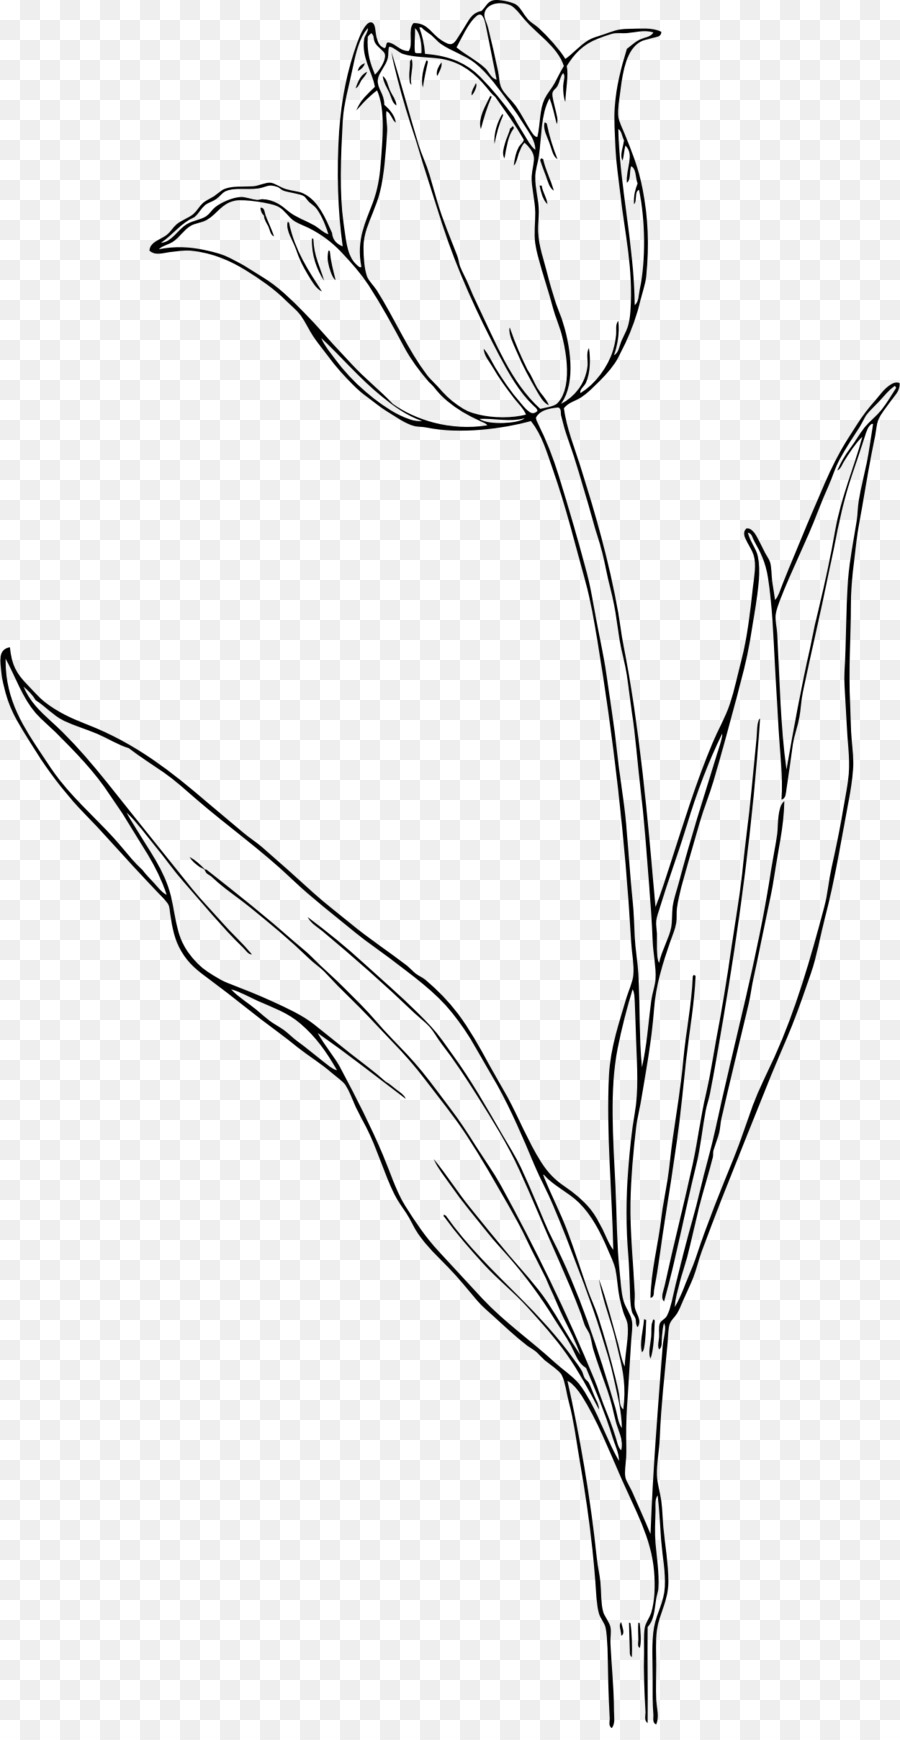 Tulip stem clipart black and wite picture royalty free download Black And White Flower clipart - Tulip, Flower, Leaf ... picture royalty free download